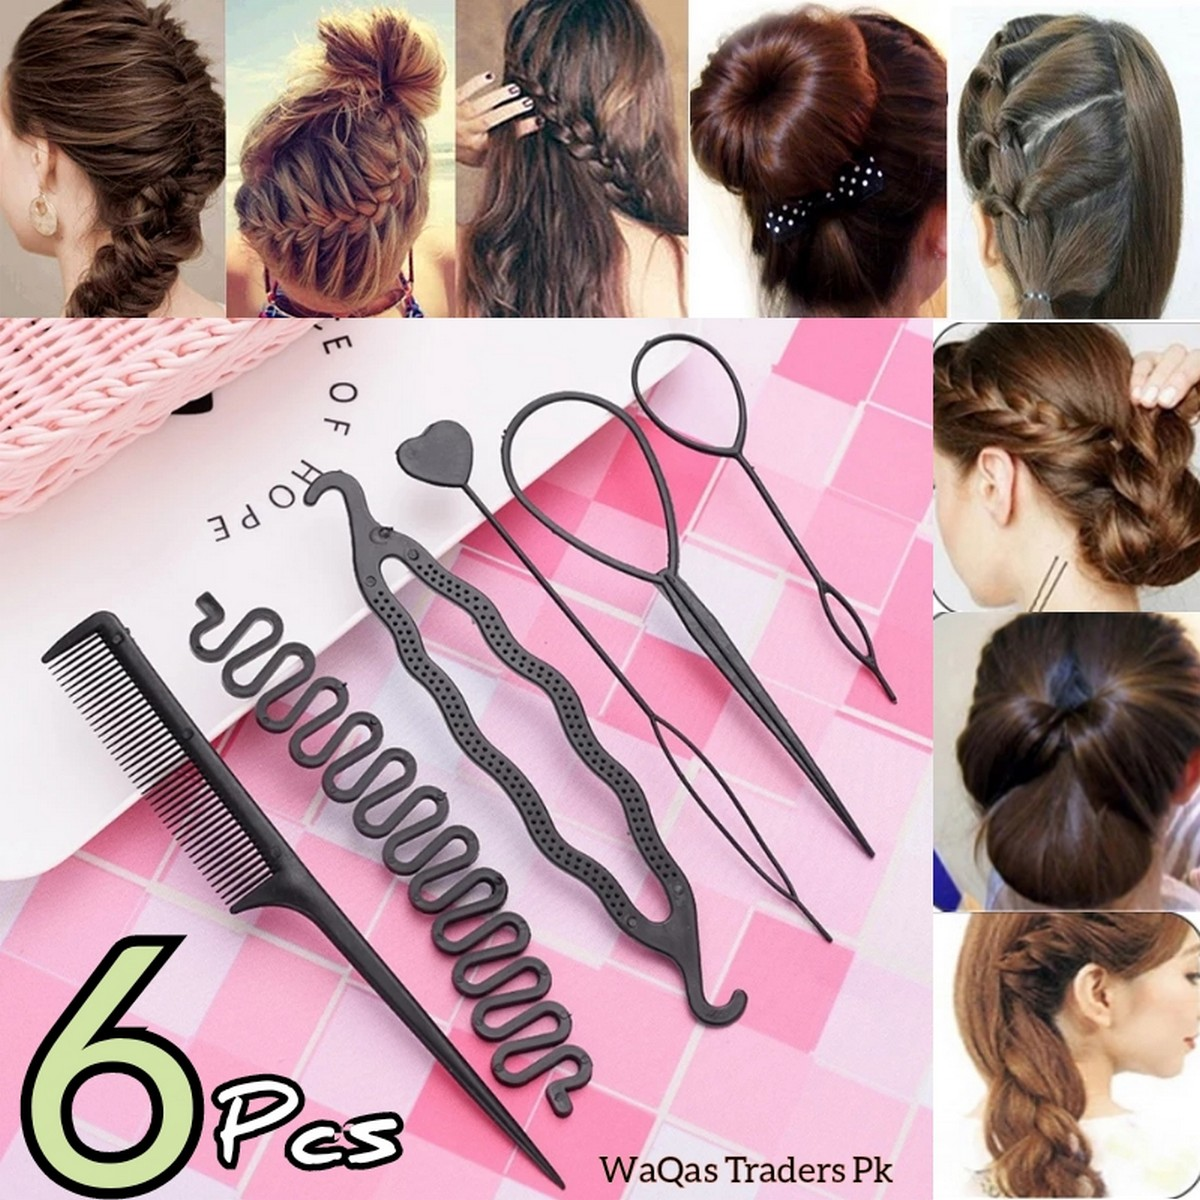 Braids Tools with Zig Zag Pony Tail Makers (Set Of 6 Pcs) Professional Braids Tools Hair Styling Kits For Women Hair Accessories Set Women Girls DIY Hair Styling Set Kit Tools Accessories Pull Hair Needle Dish hair Comb Tools As Picture